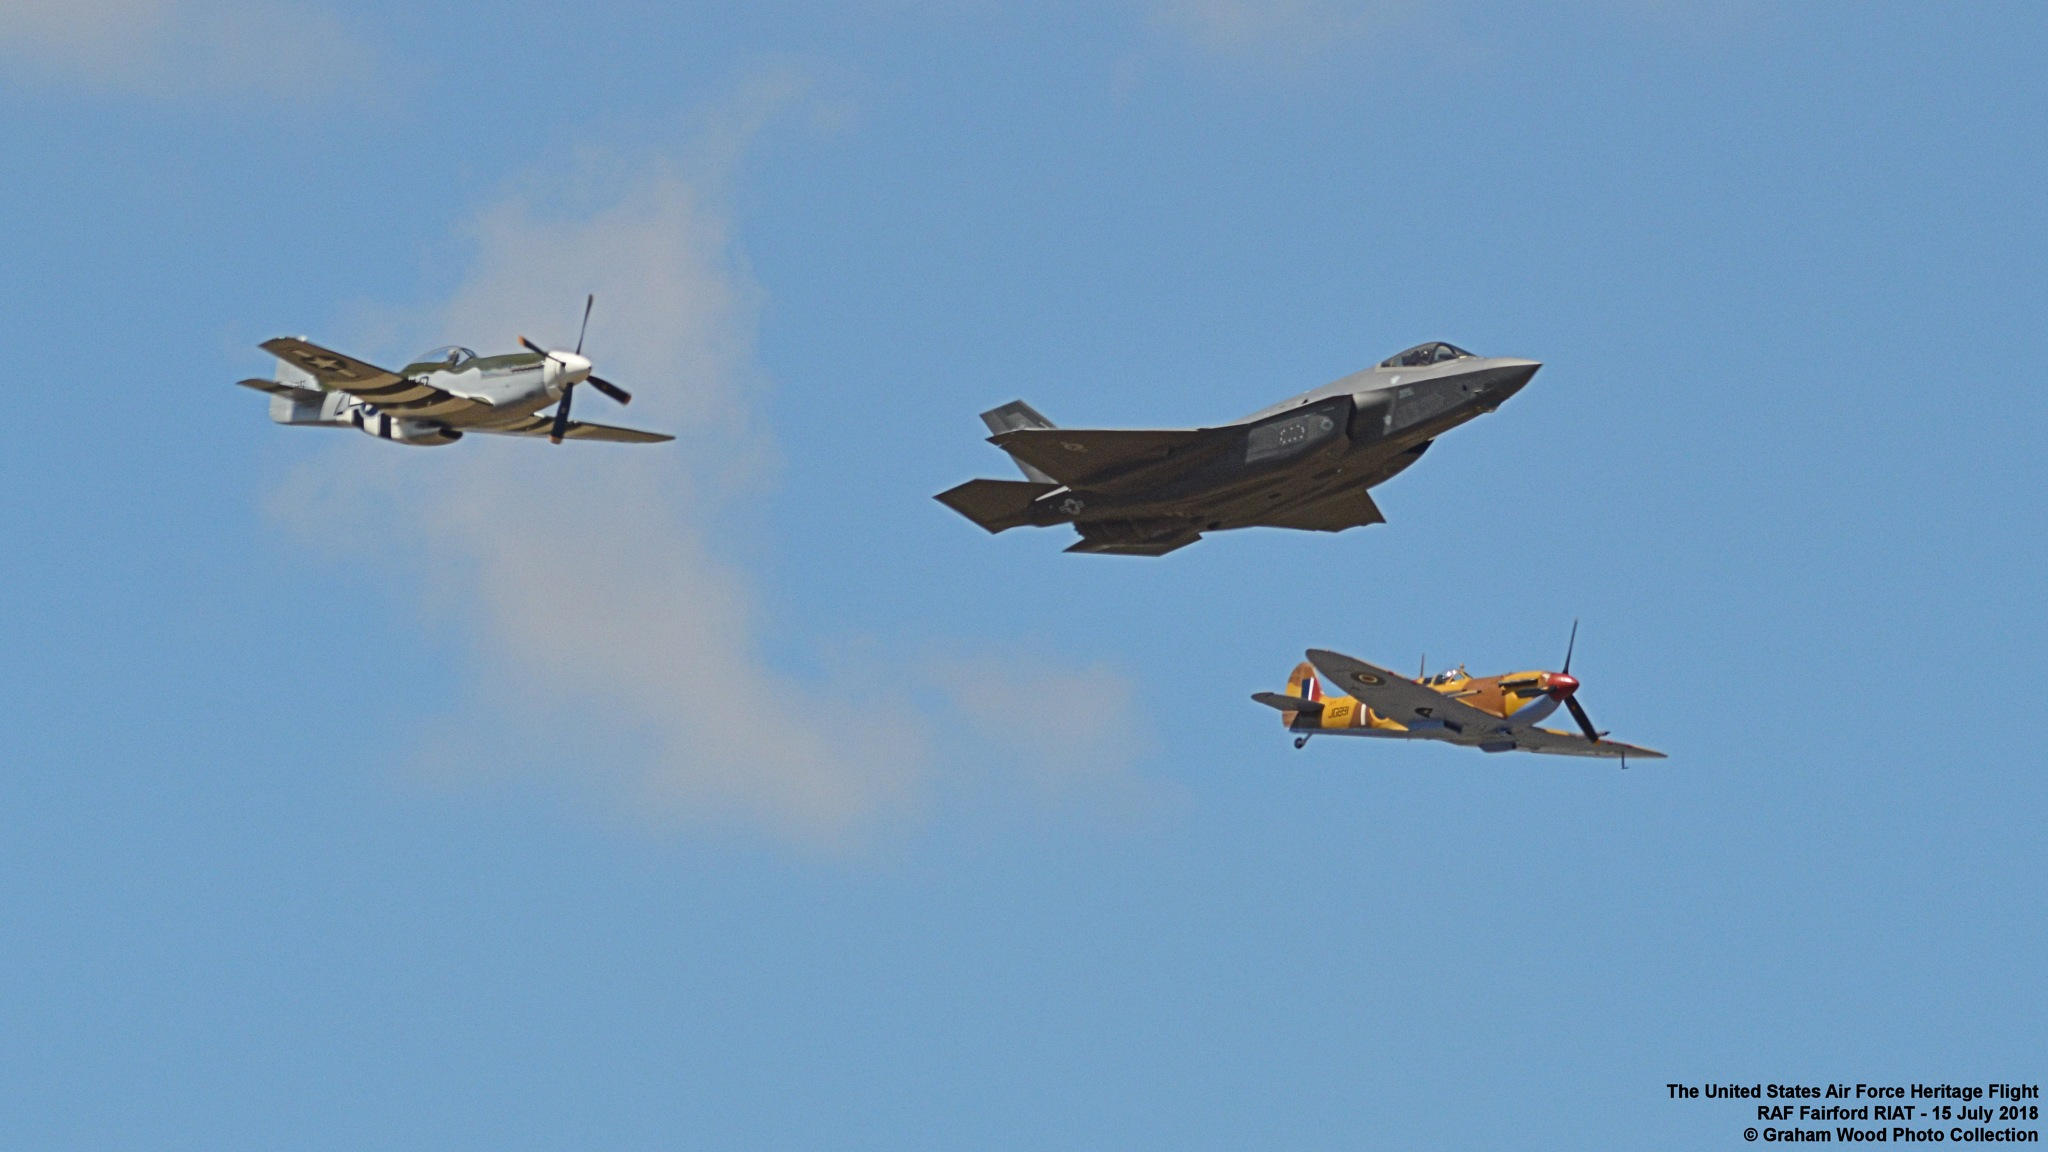 The United States Air Force Heritage Flight 2018 by Graham Wood Photo Collection